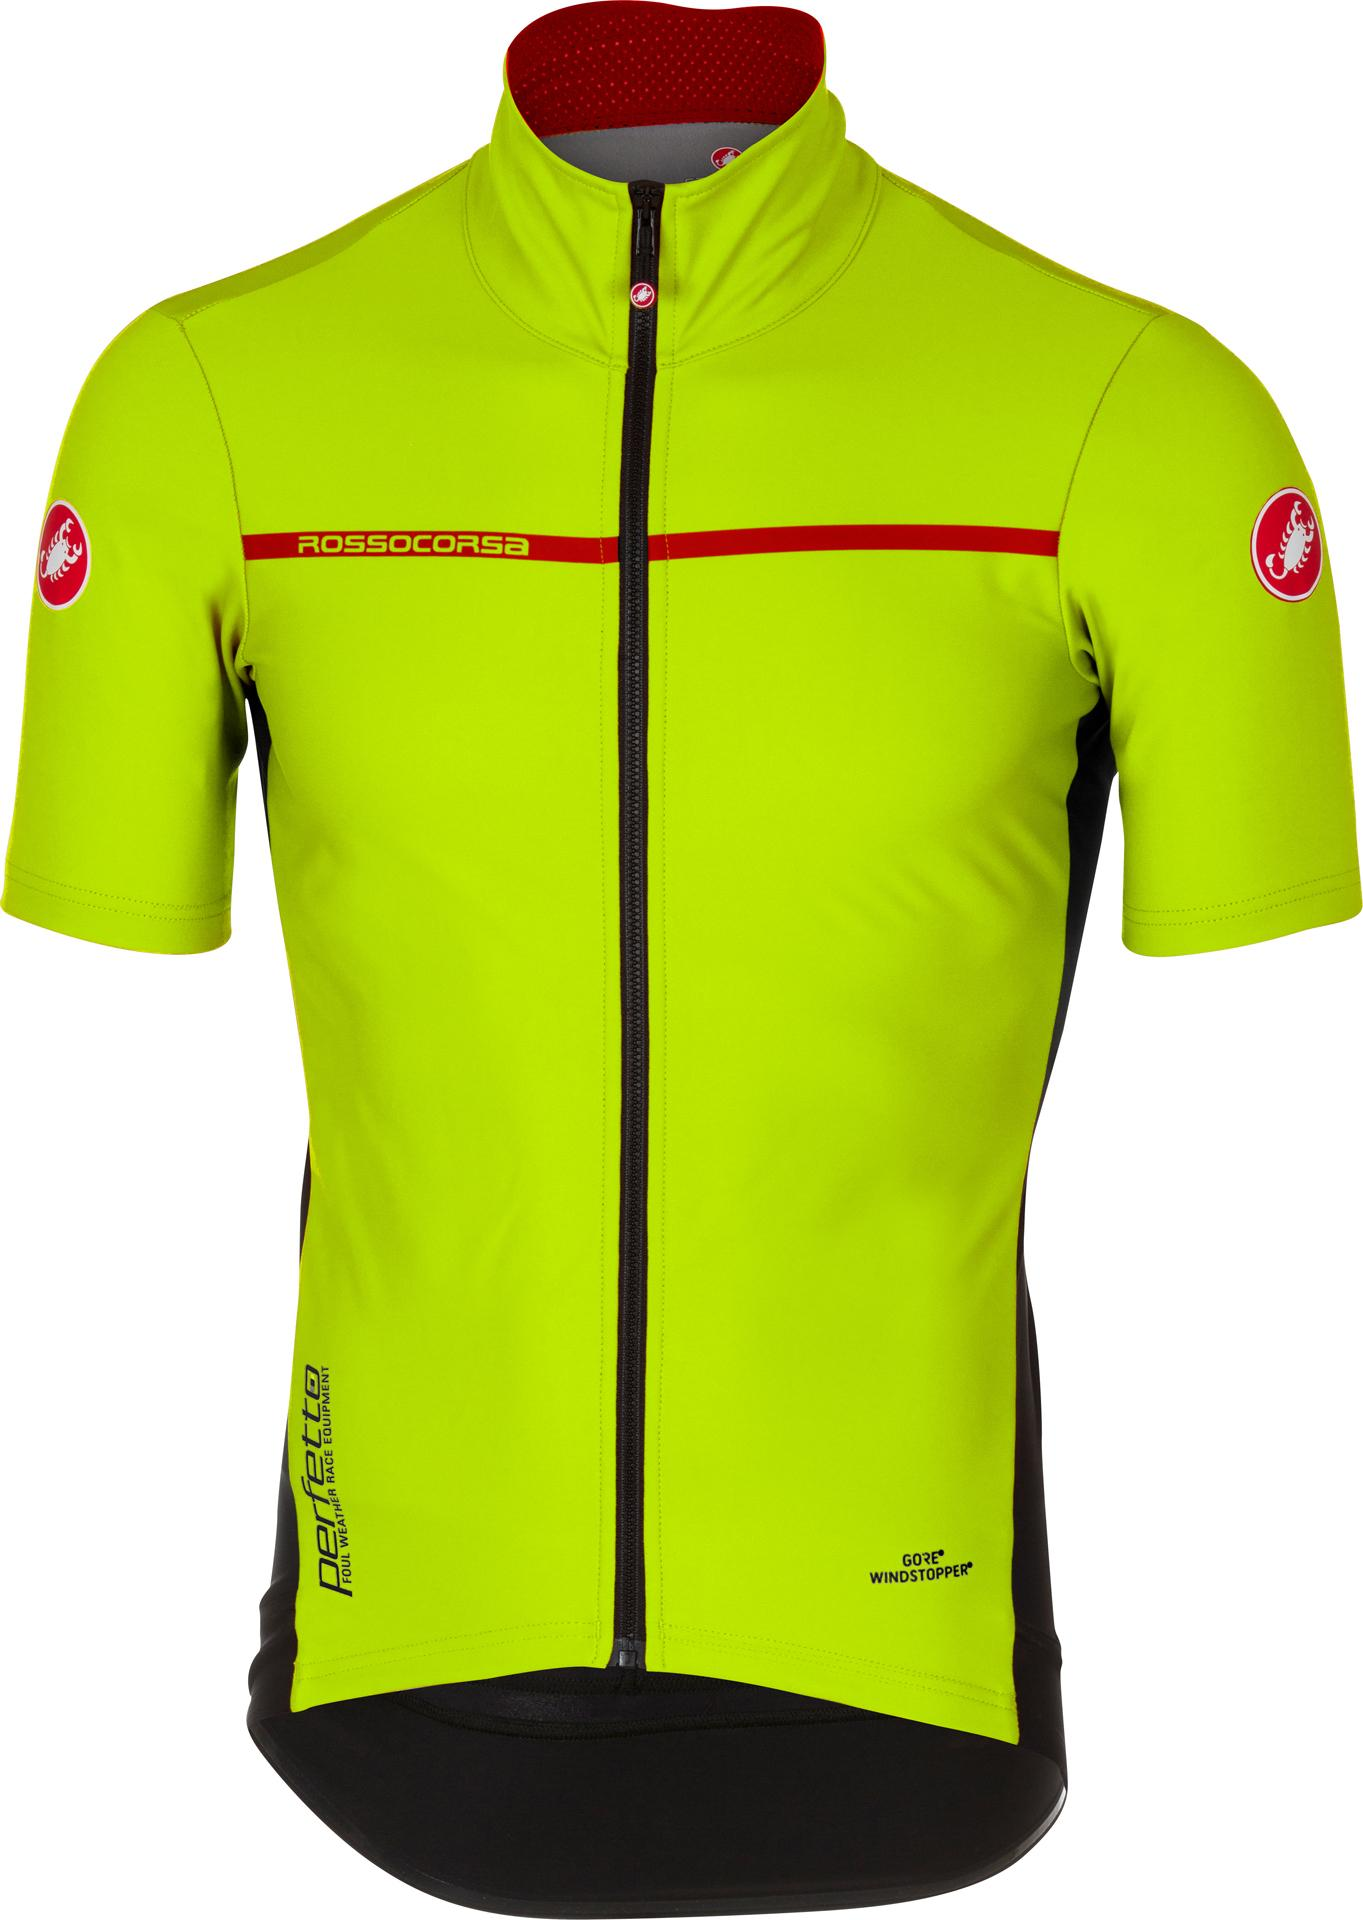 Castelli Fietsshirt korte mouwen waterafstotend Heren Fluo Rood / CA Perfetto Light 2 Yellow Fluo